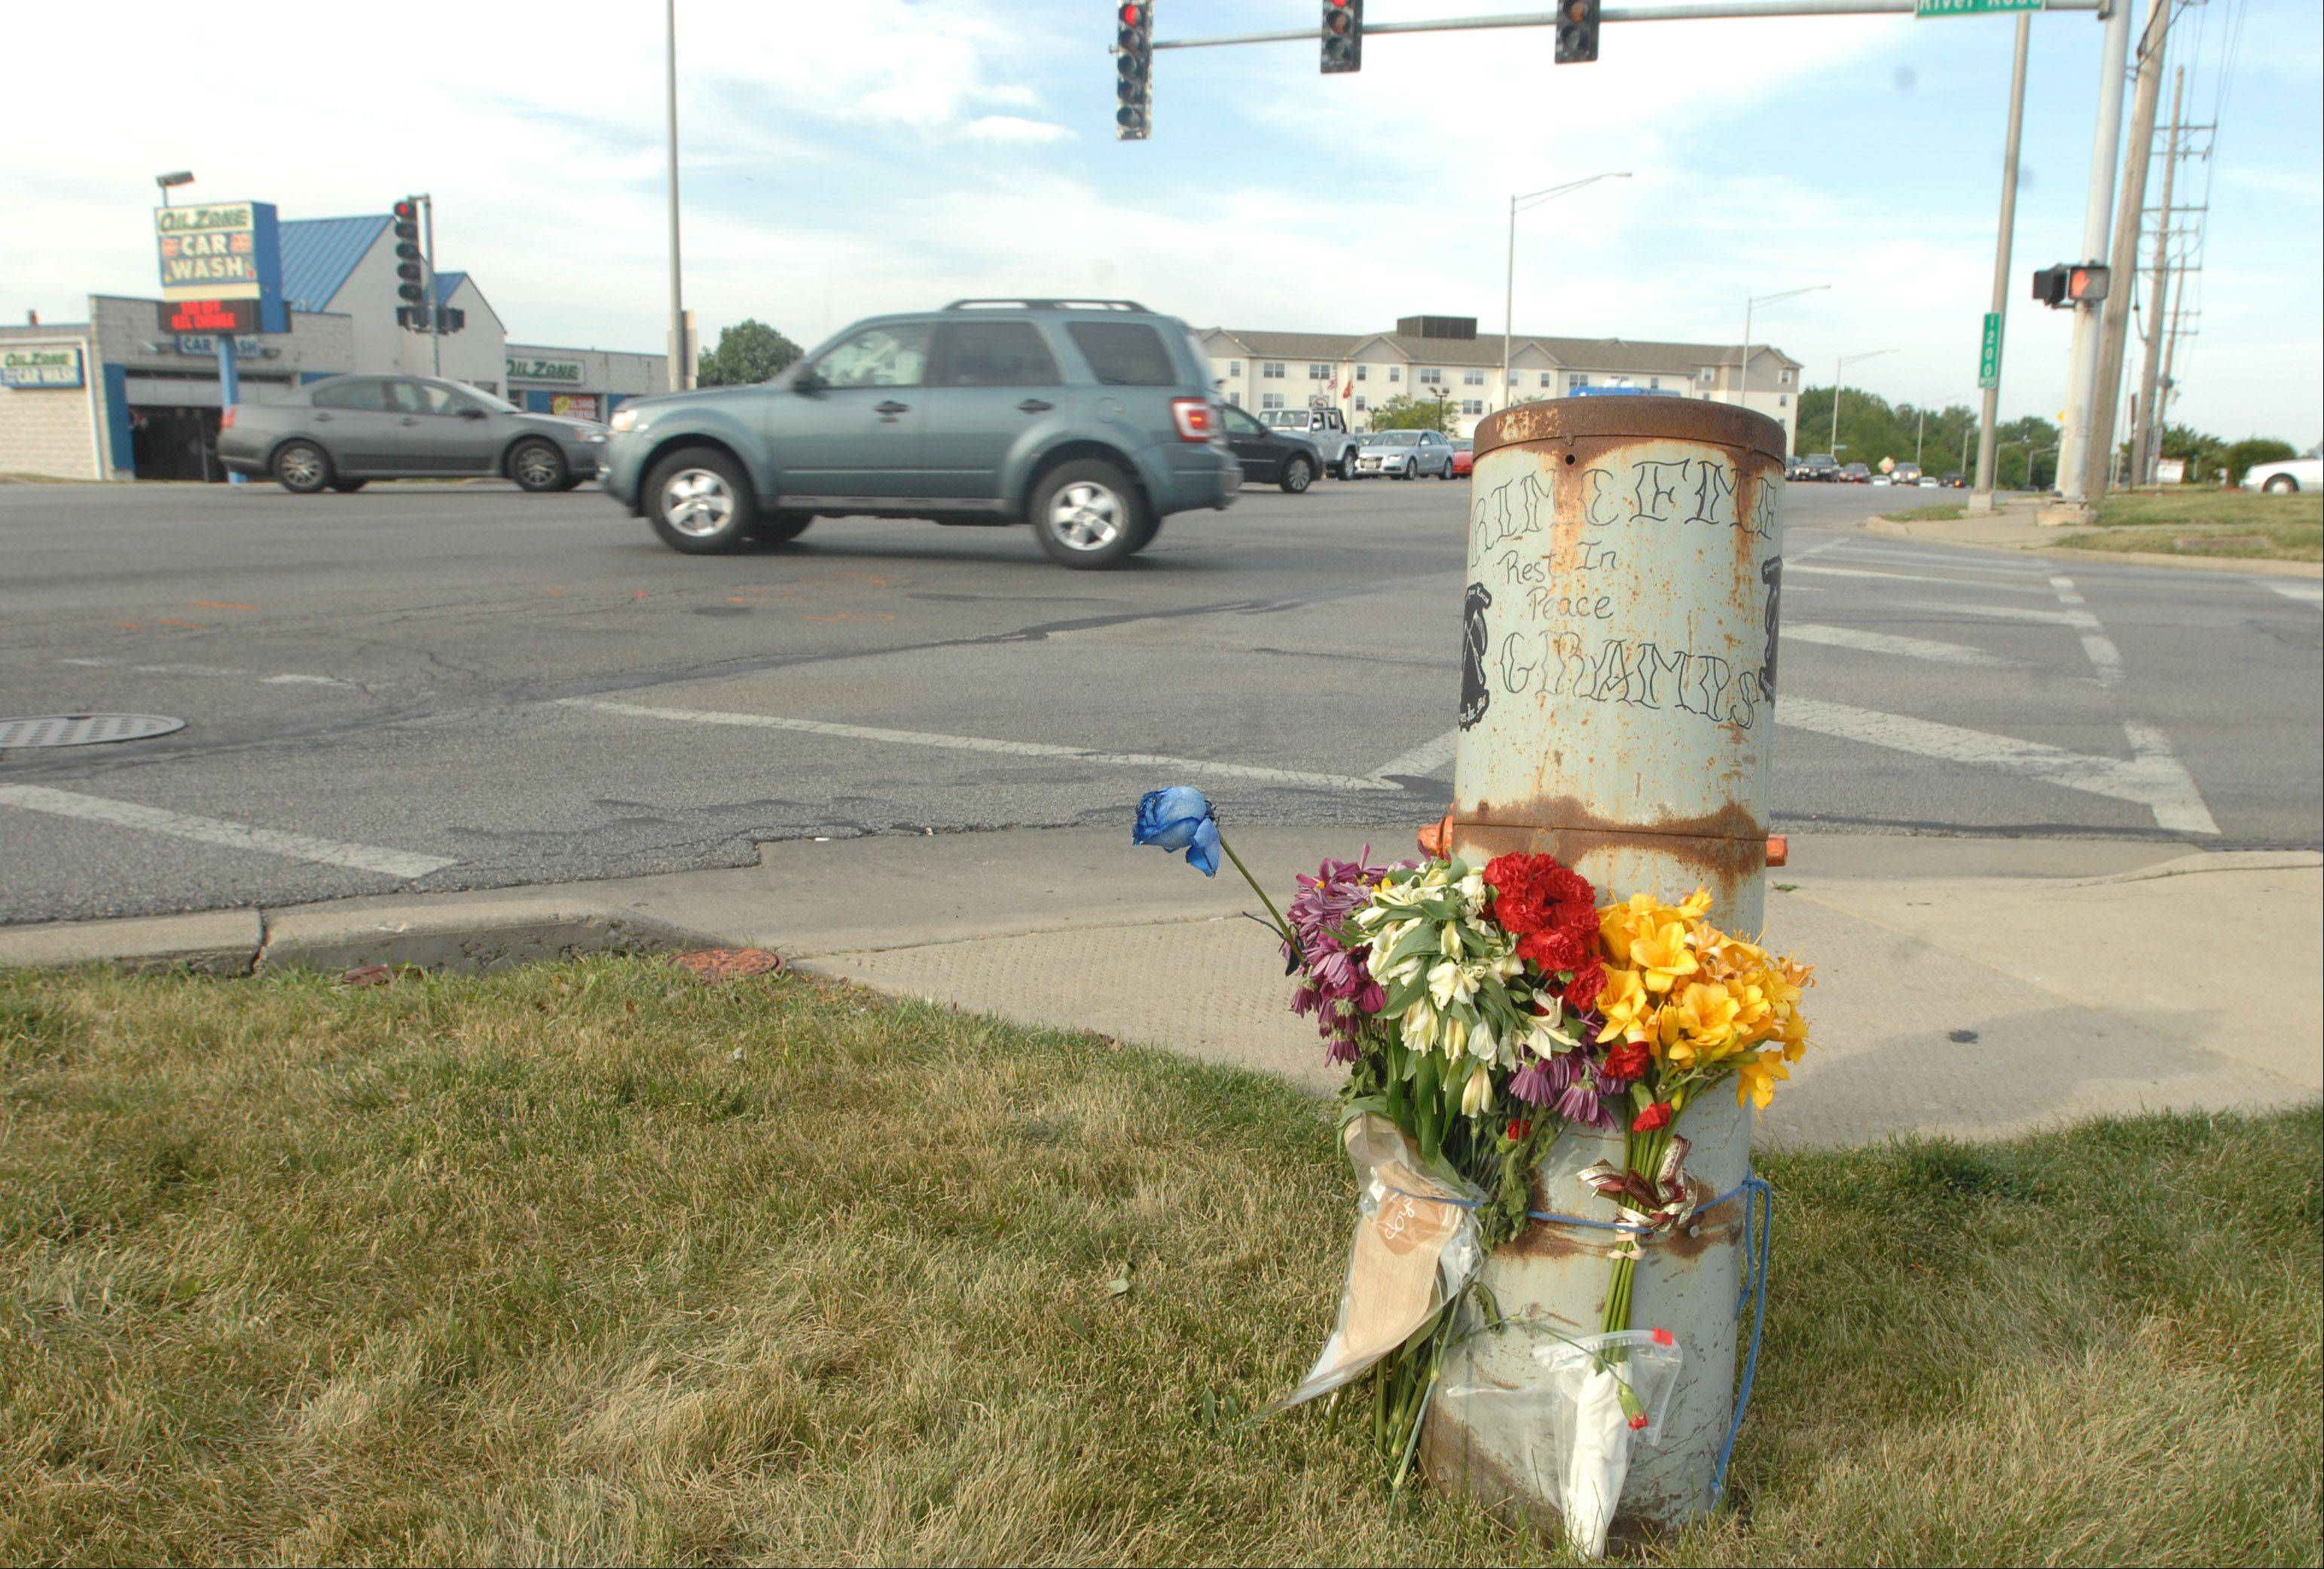 A memorial was placed at the corner of Ogden Avenue and River Road in Naperville last June after motorcyclist Gerald Puglise was killed there in a crash prosecutors said was sparked by road rage.